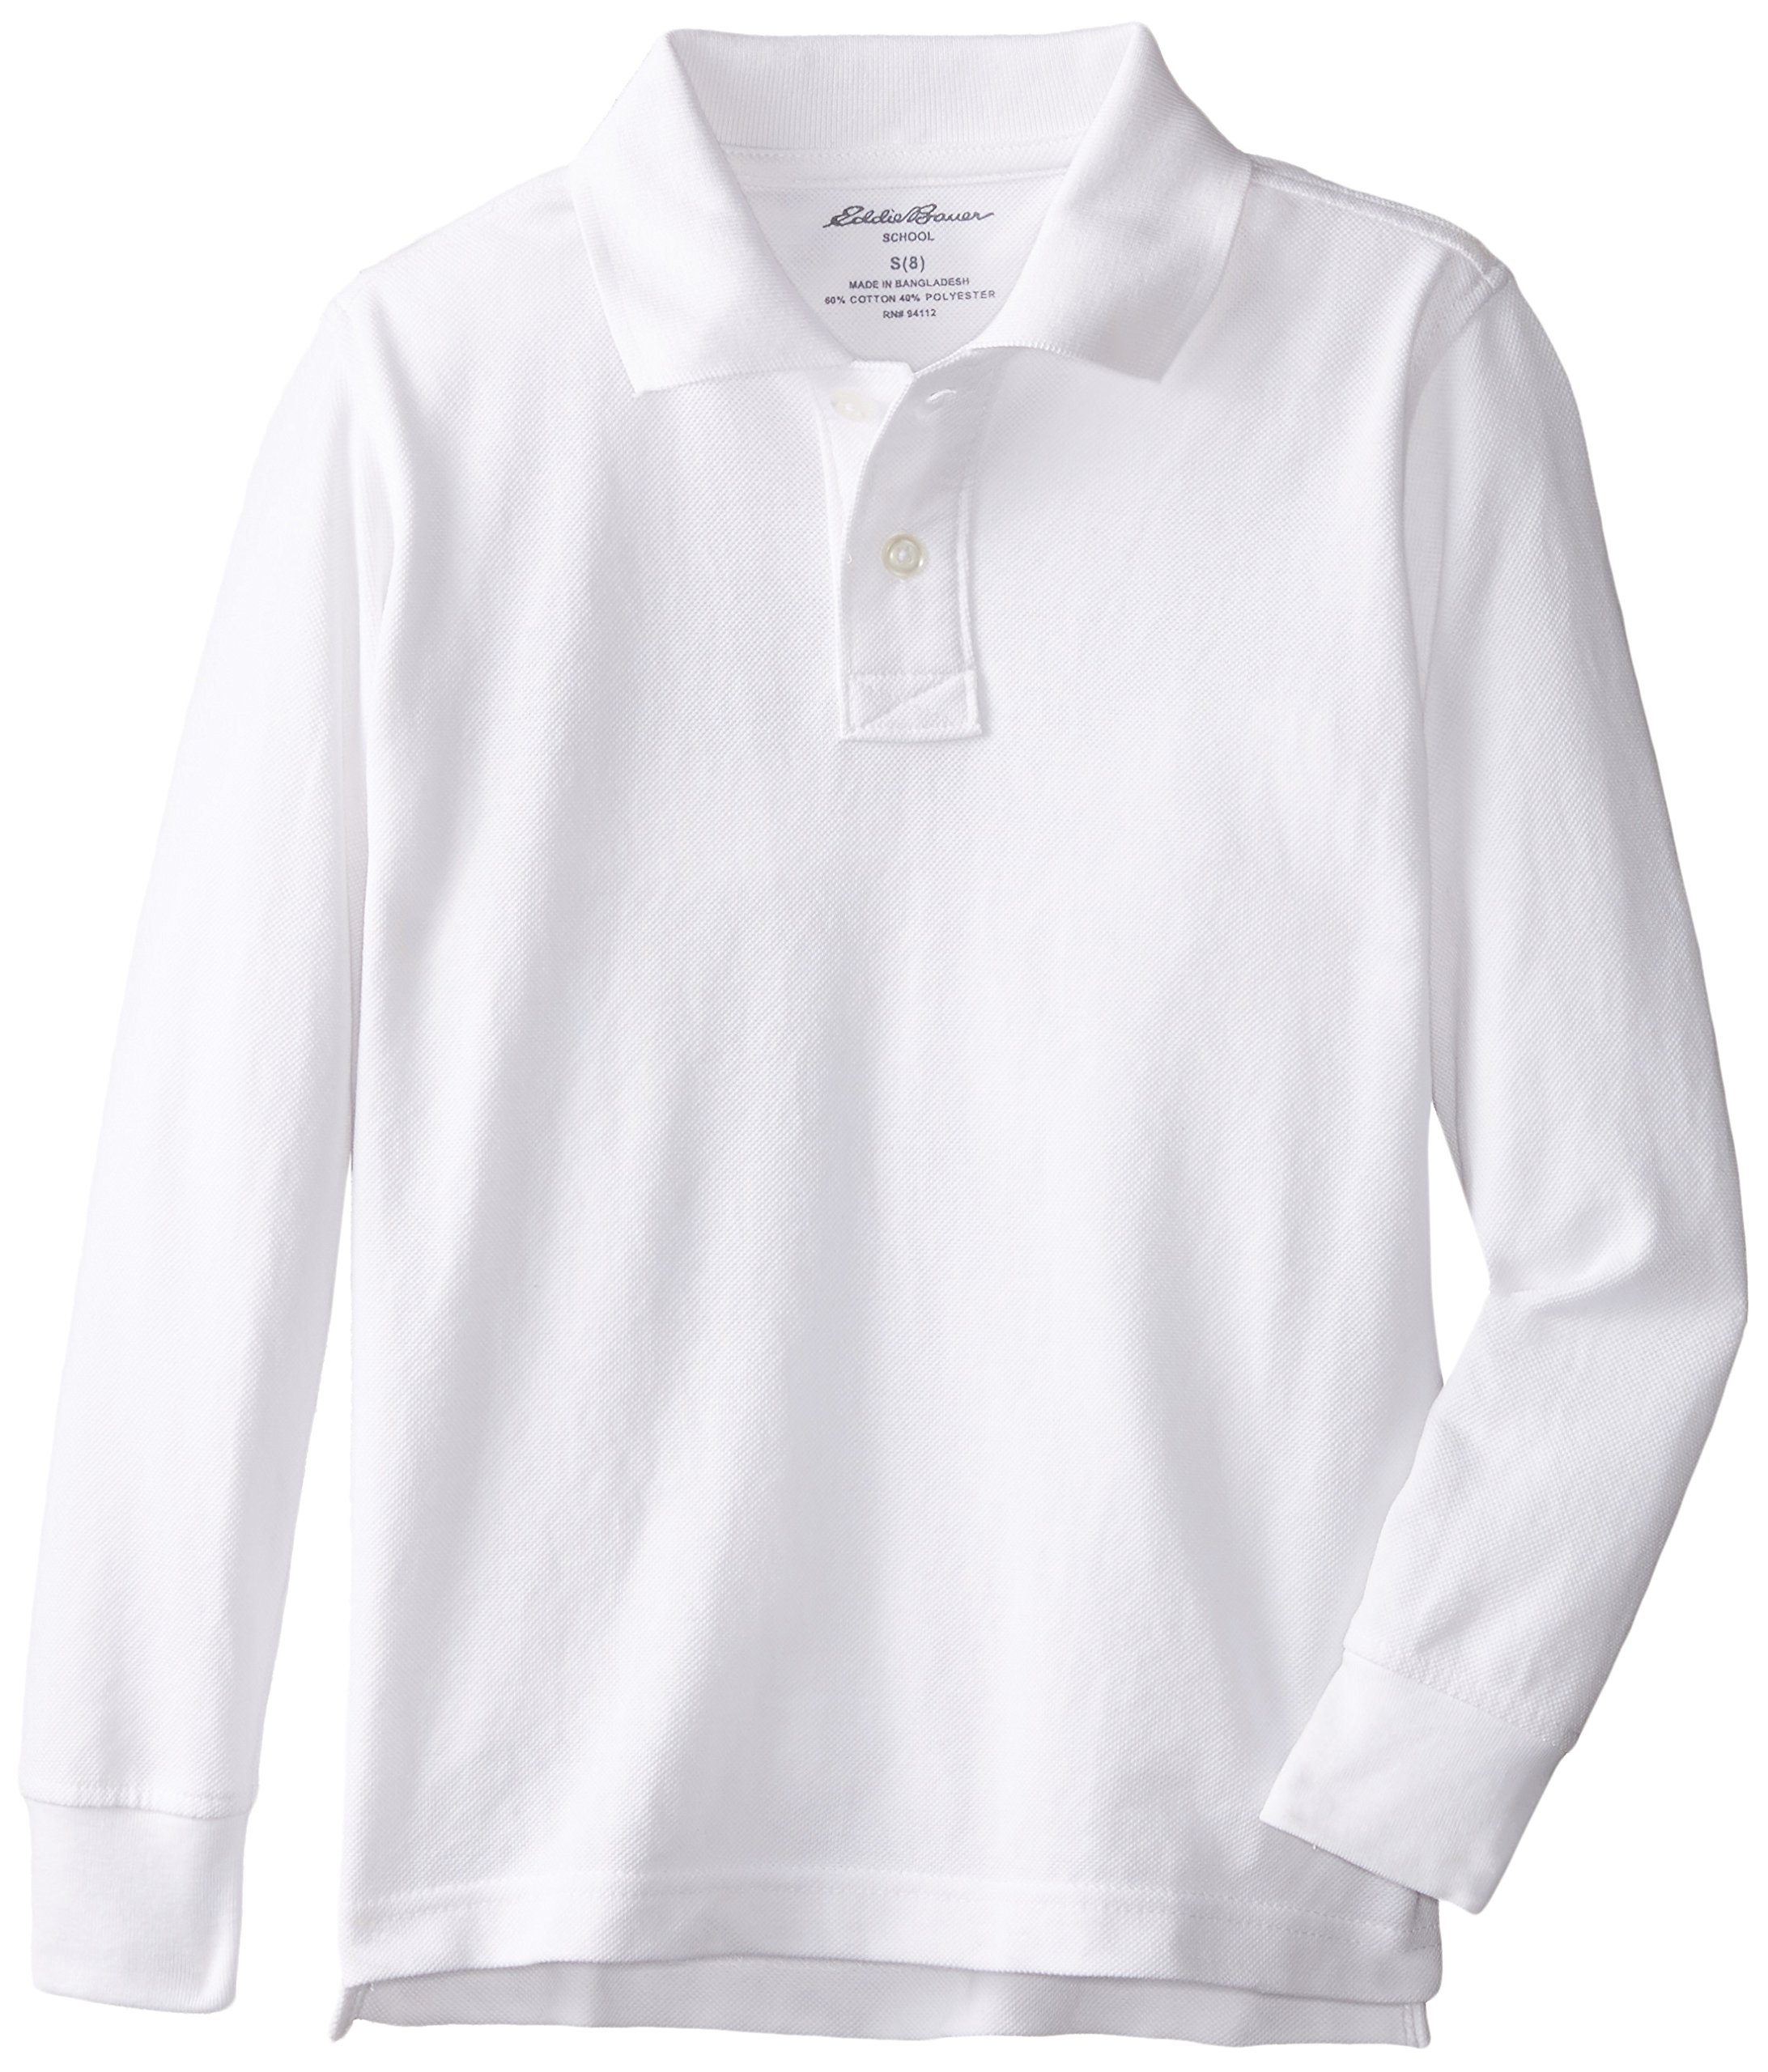 Eddie Bauer Boys' Short Long Sleeve Polo Shirt (More Styles Available), Long Sleeve White, 10/12